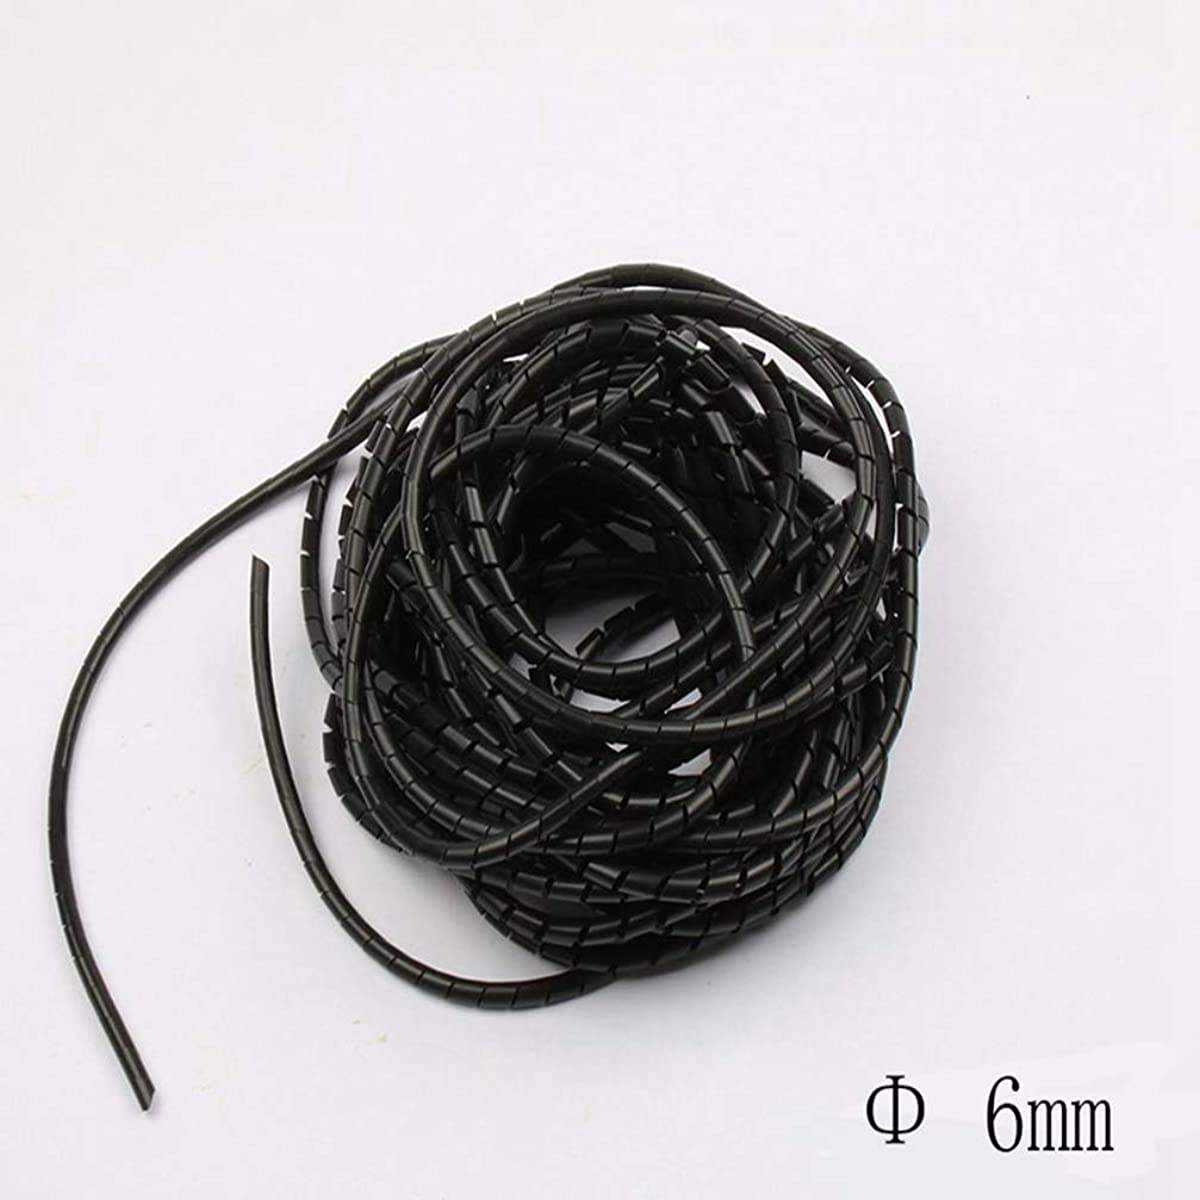 Spiral Wrapping Band SWB-06 Diameter 6mm About 13M Length Black Cable Casing Cable Sleeves Winding Pipe Spiral Wrapping